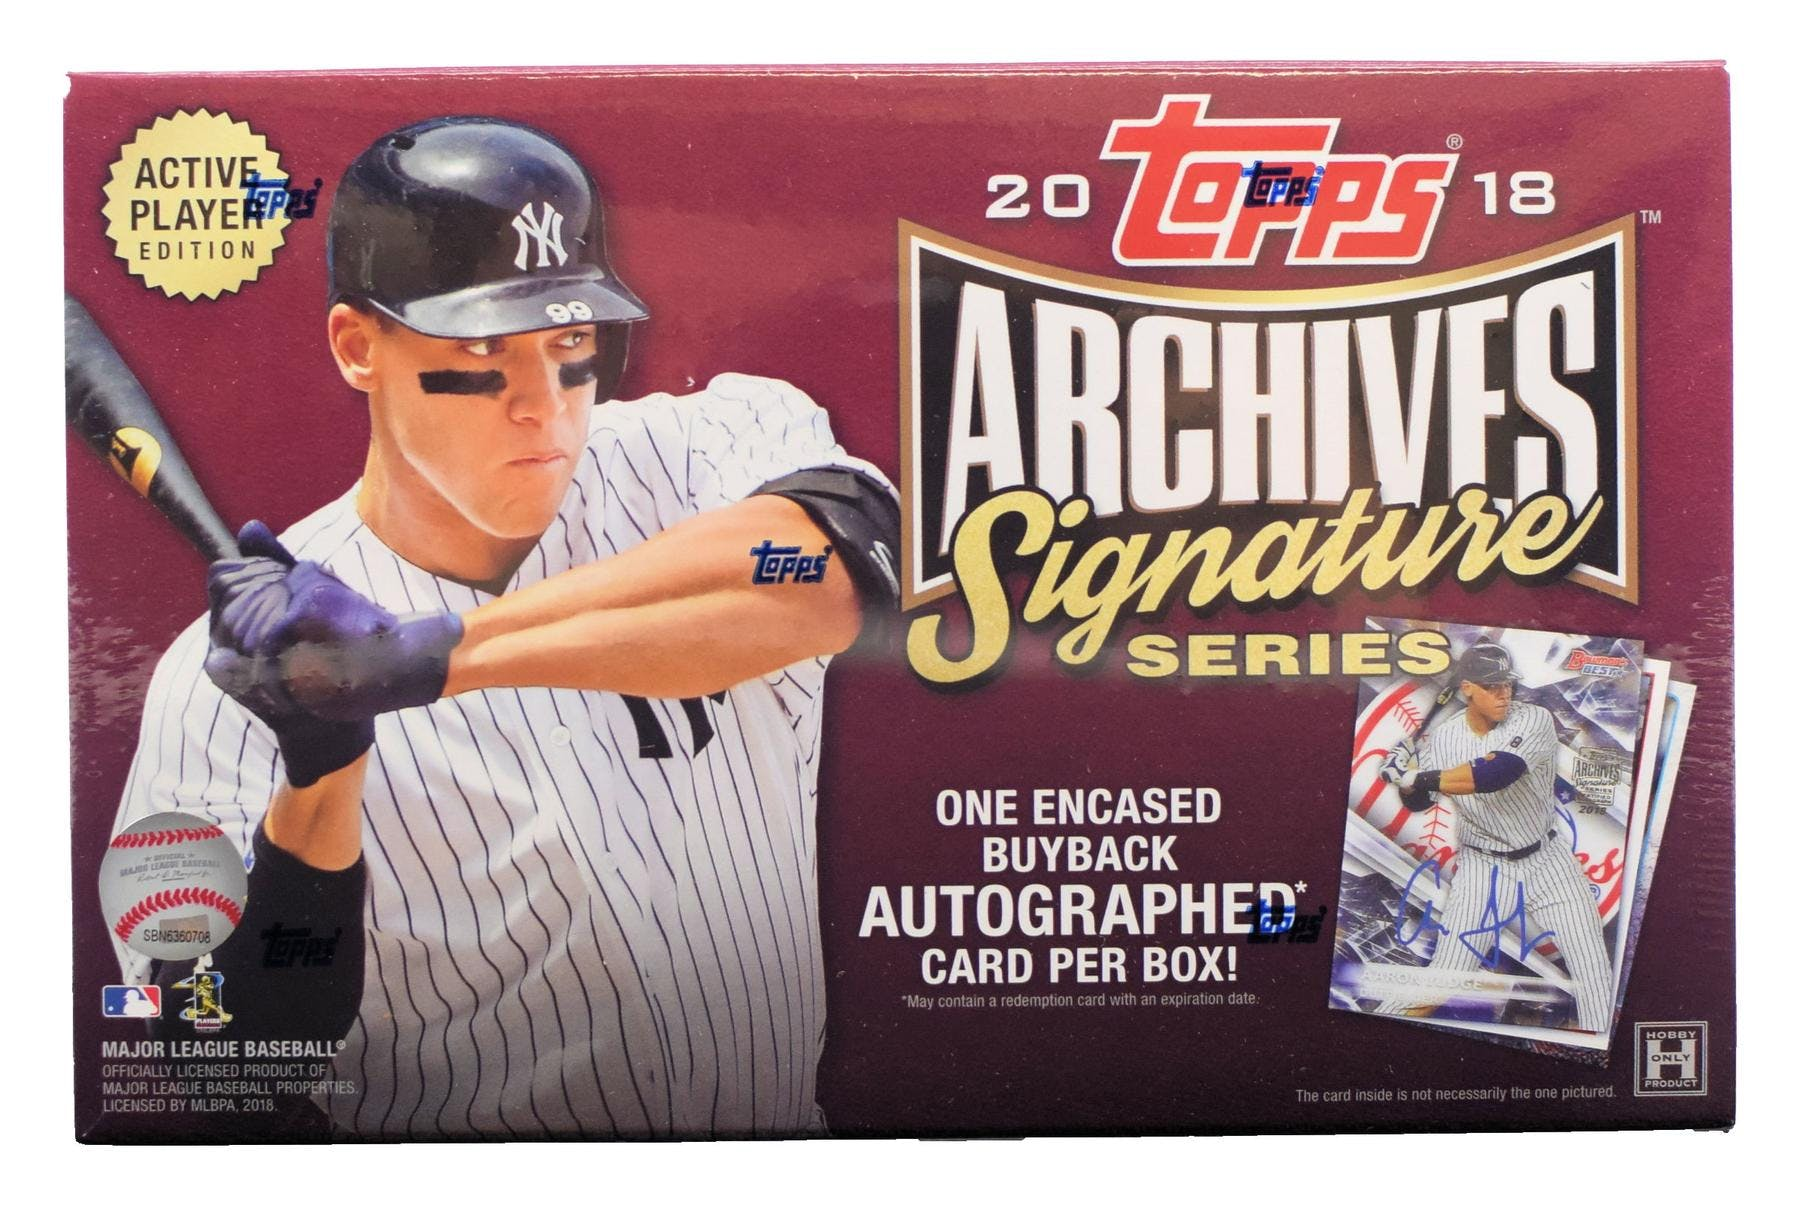 2018 Topps Archives Signature Series Baseball Hobby Box